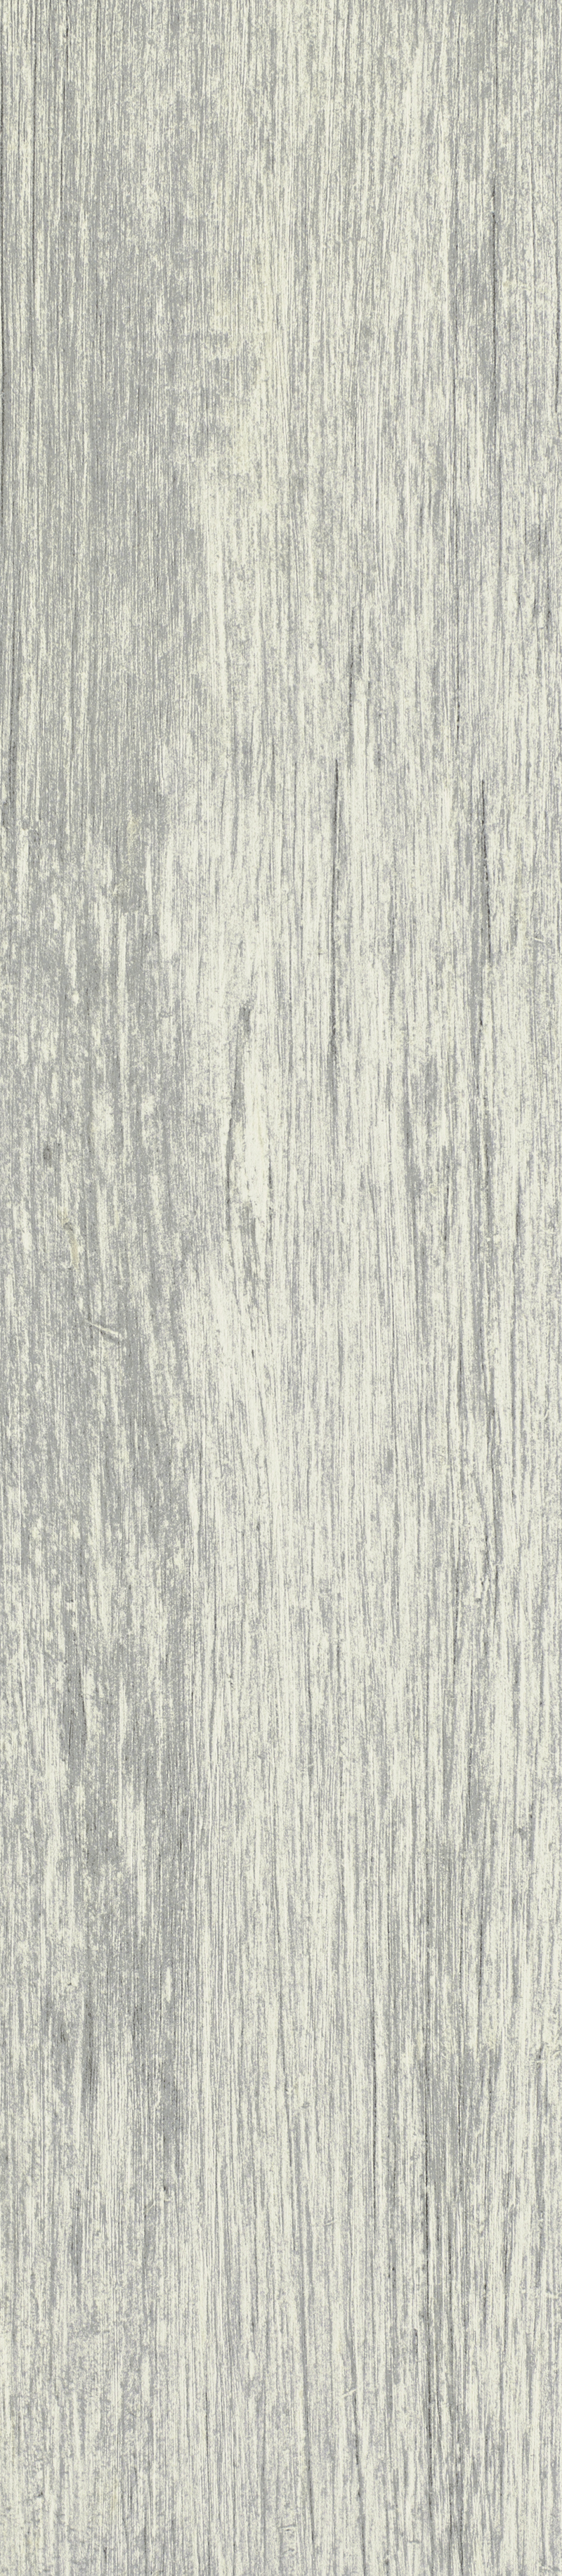 Forester beige wood effect porcelain tile 215x985cm the tile bin matt porcelain wood effect floor tile dailygadgetfo Gallery